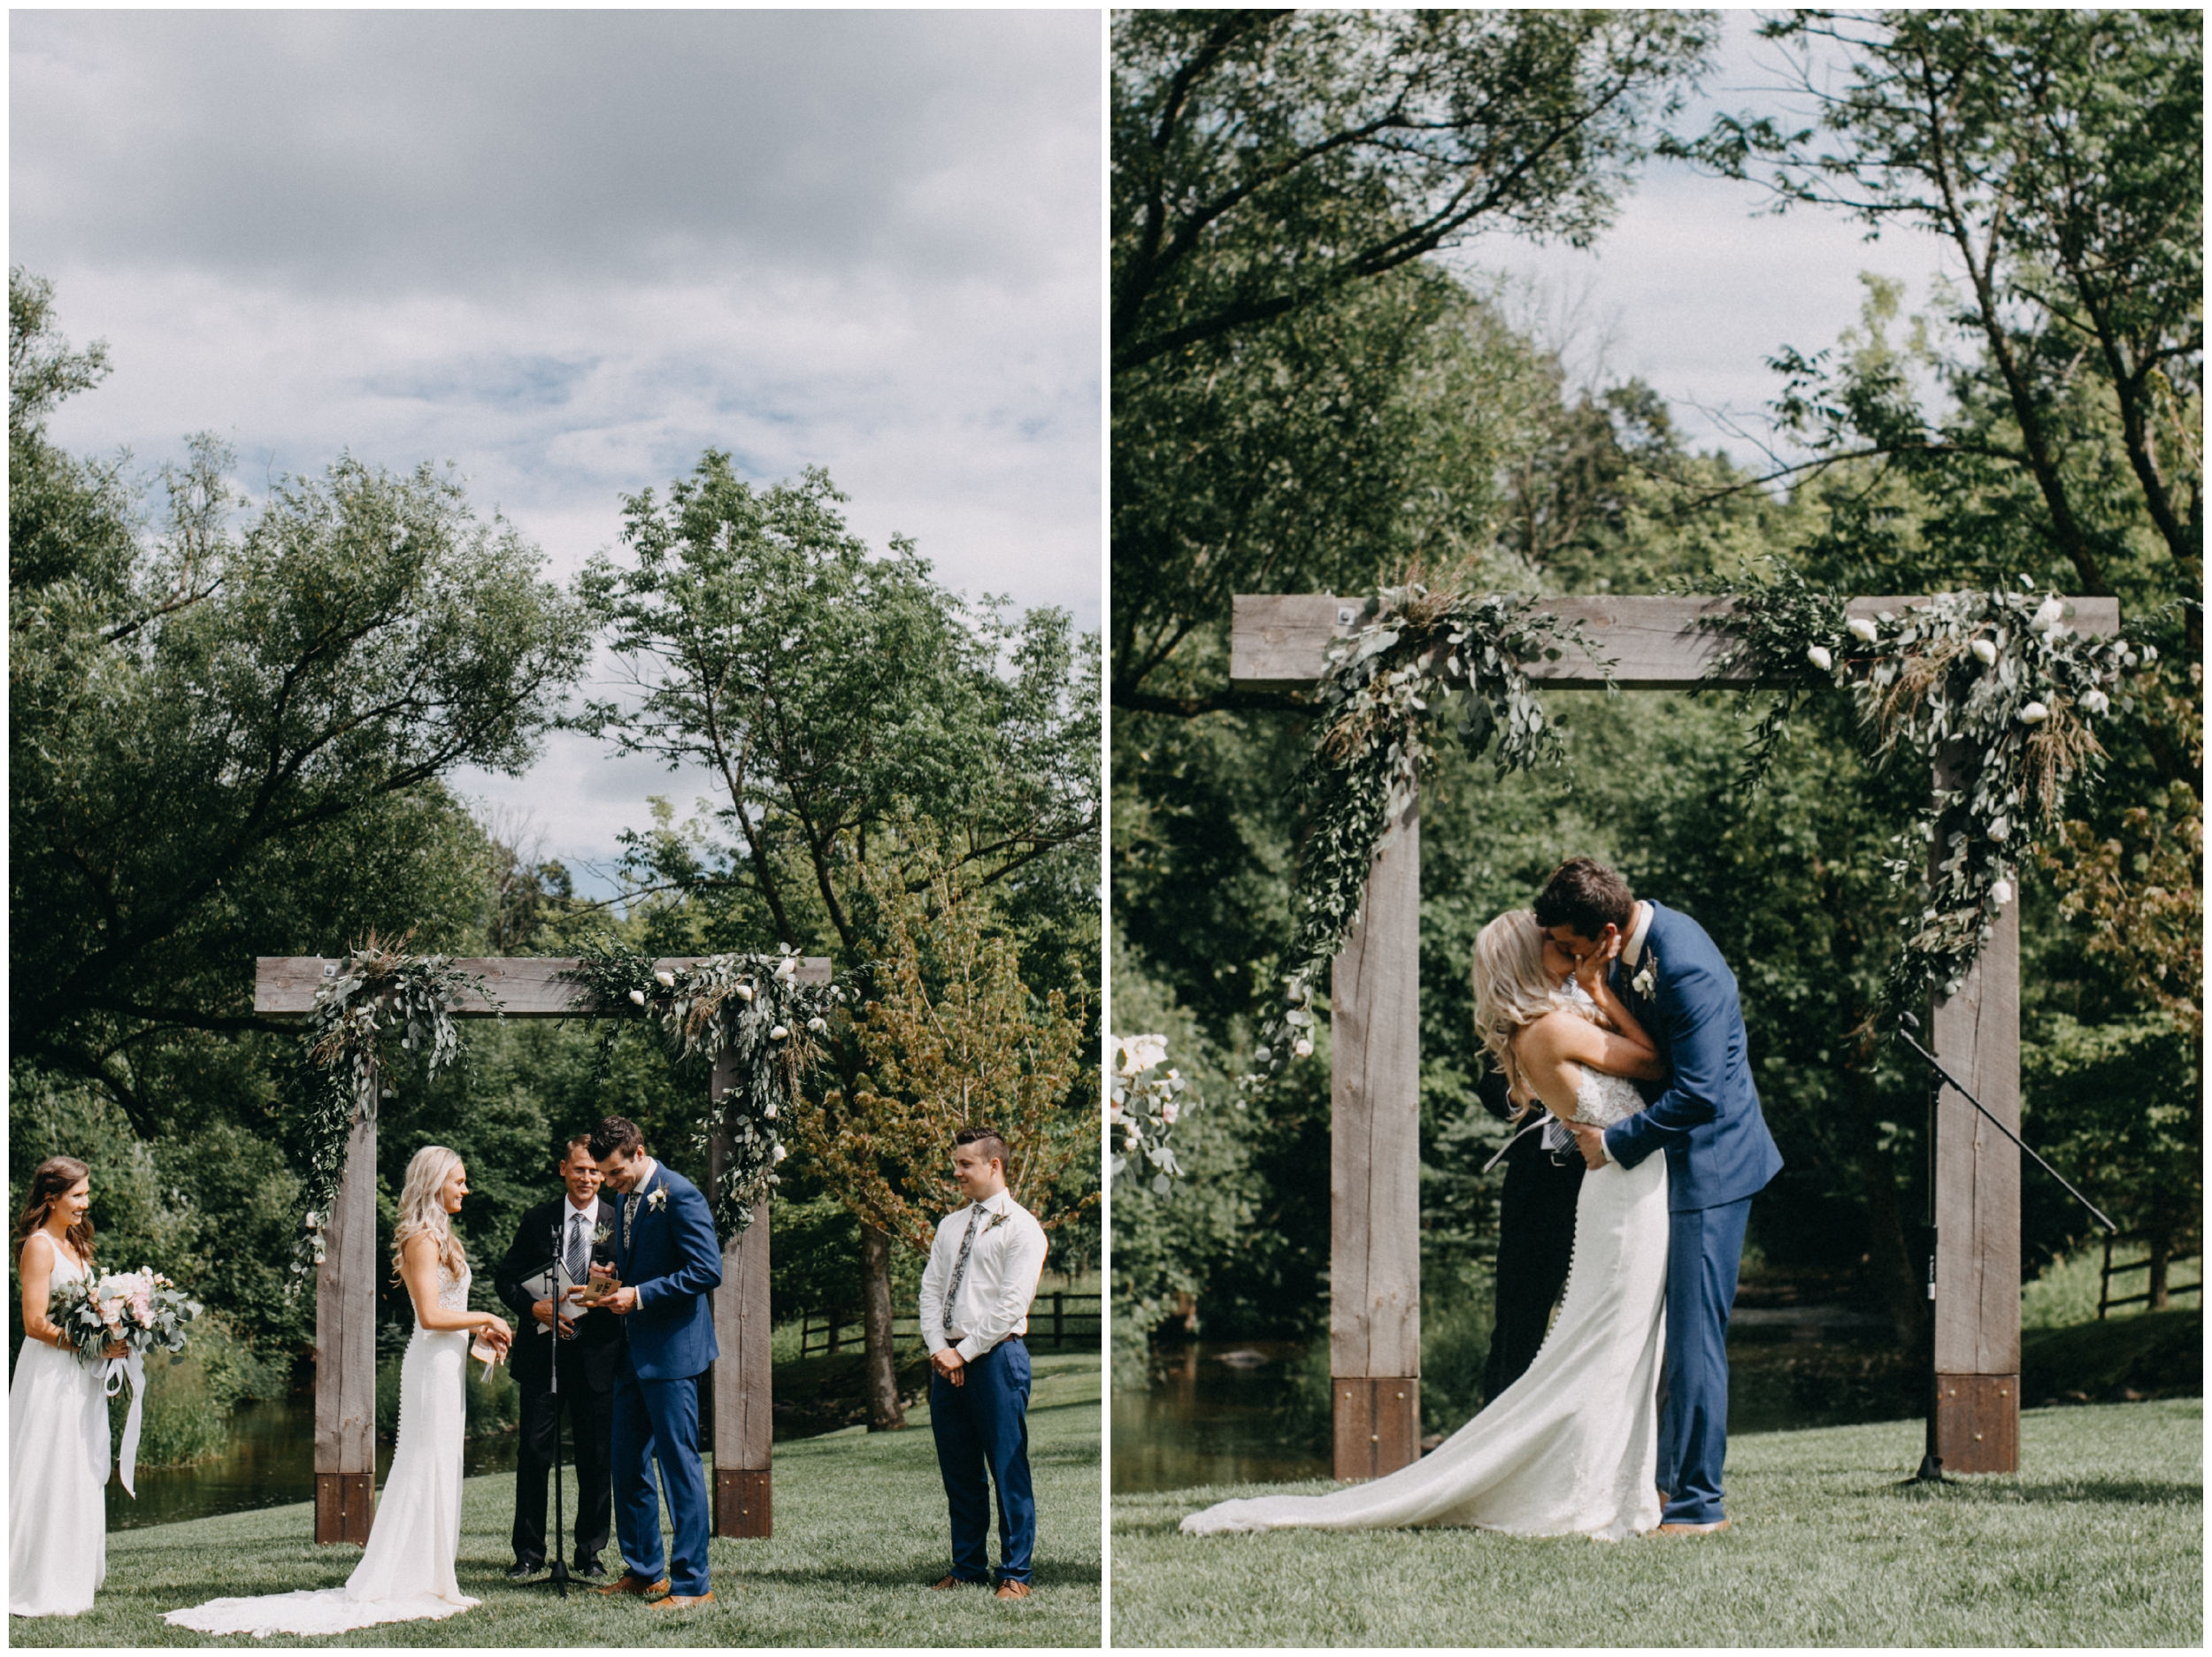 Backyard wedding ceremony at Creekside Farm in Rush City, Minnesota